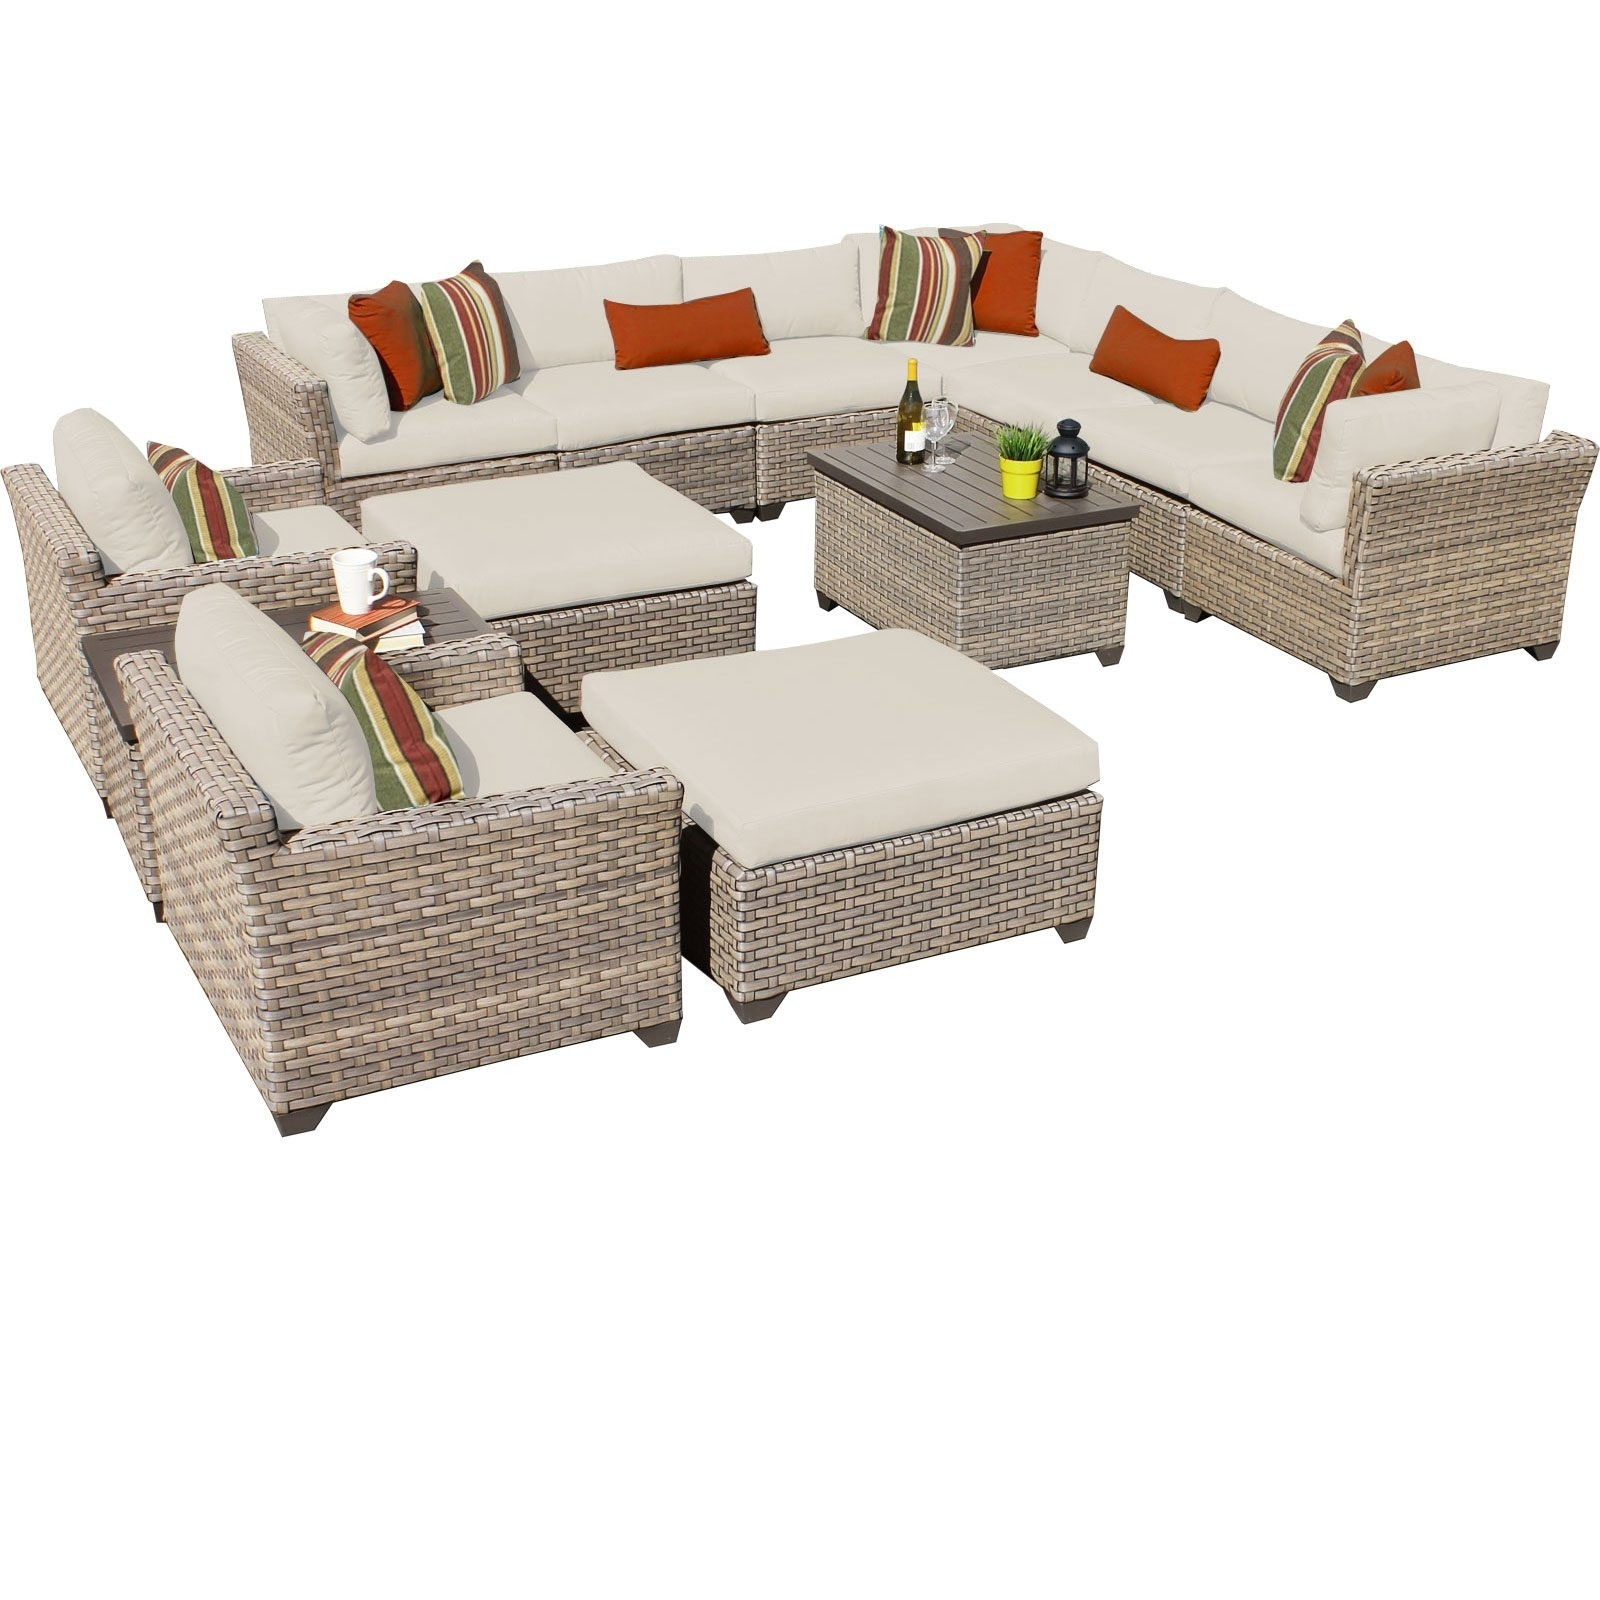 30 Luxury Walmart Patio Sets On Sale Ideas Throughout Most Recently Released Patio Conversation Sets At Walmart (View 1 of 20)